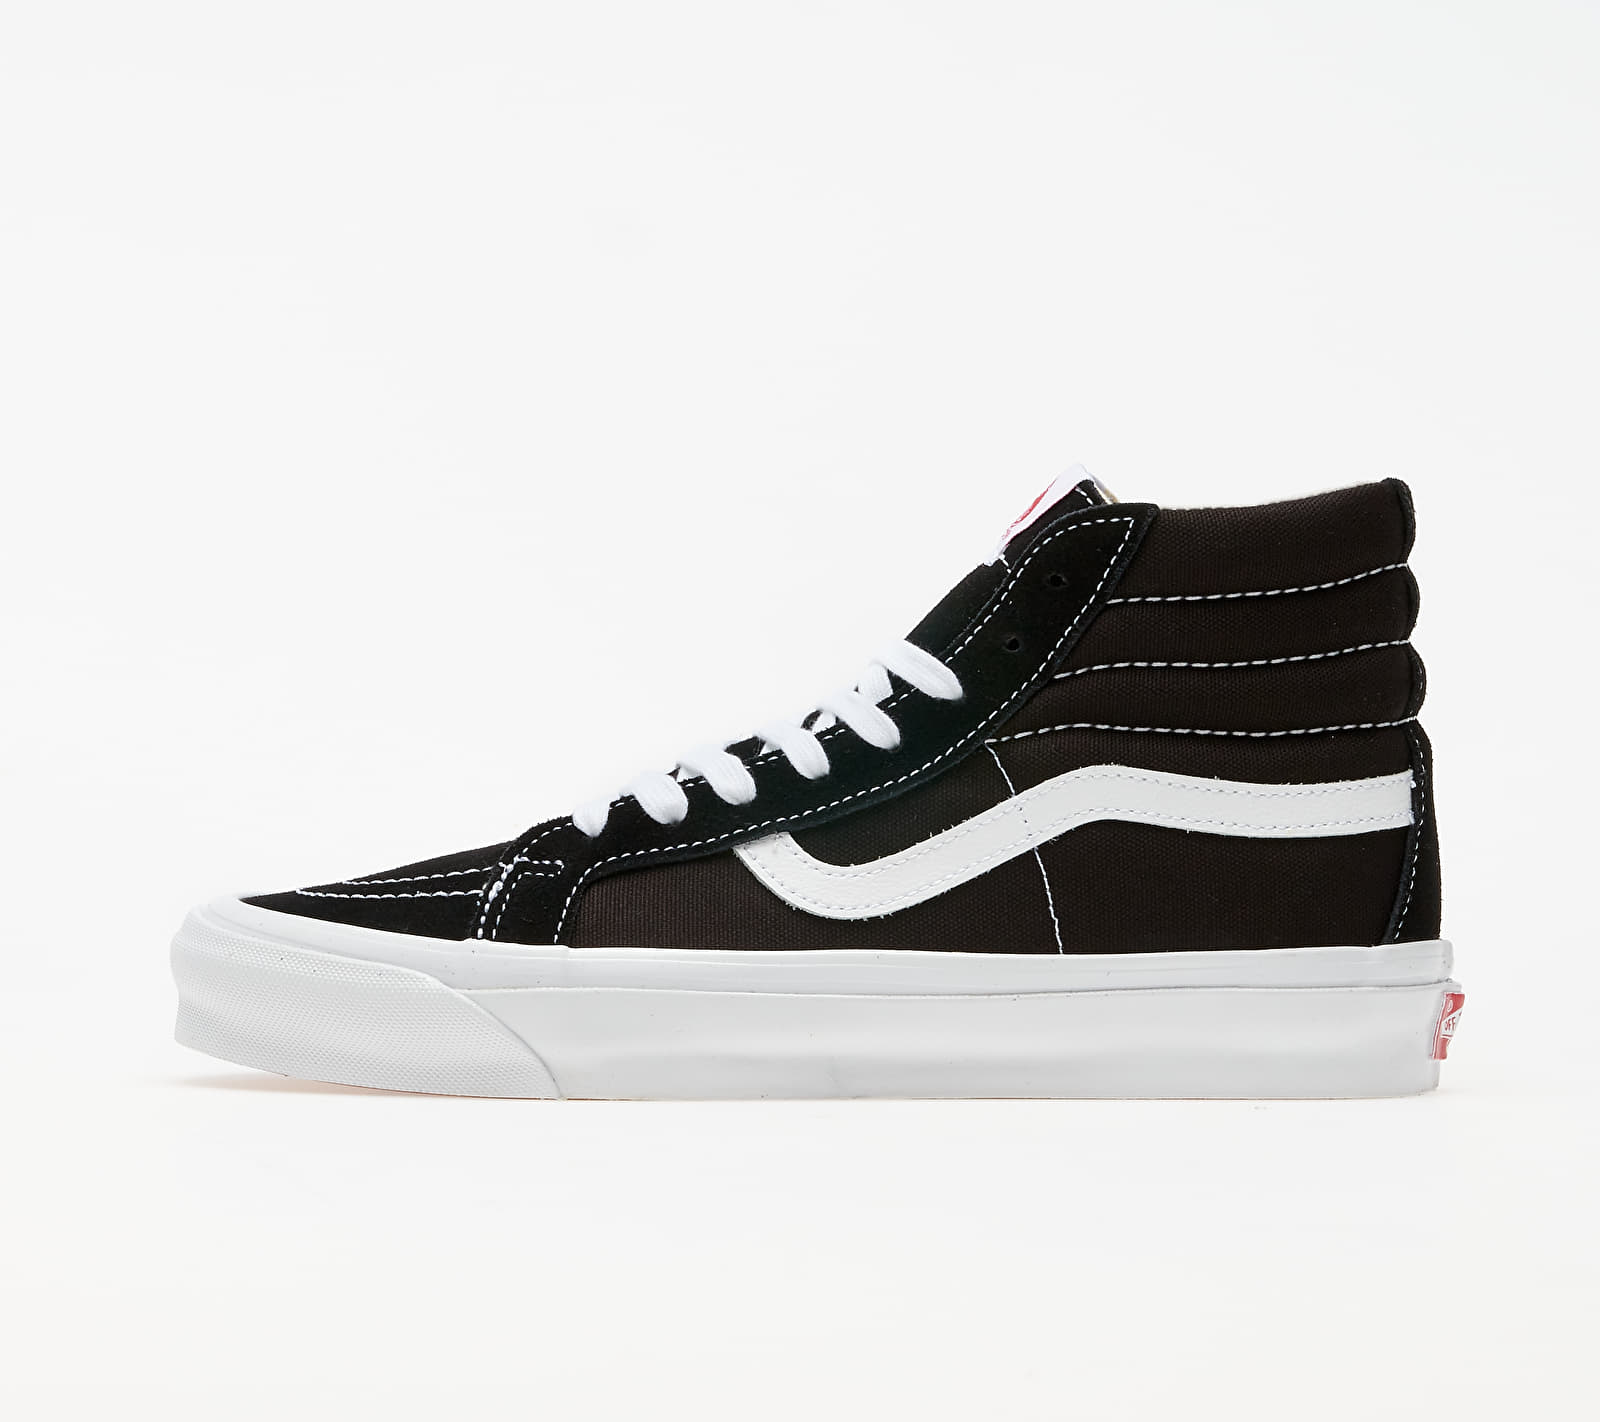 Vans Vault OG Sk8-Hi LX (Suede/ Canvas) Black/ True White EUR 41